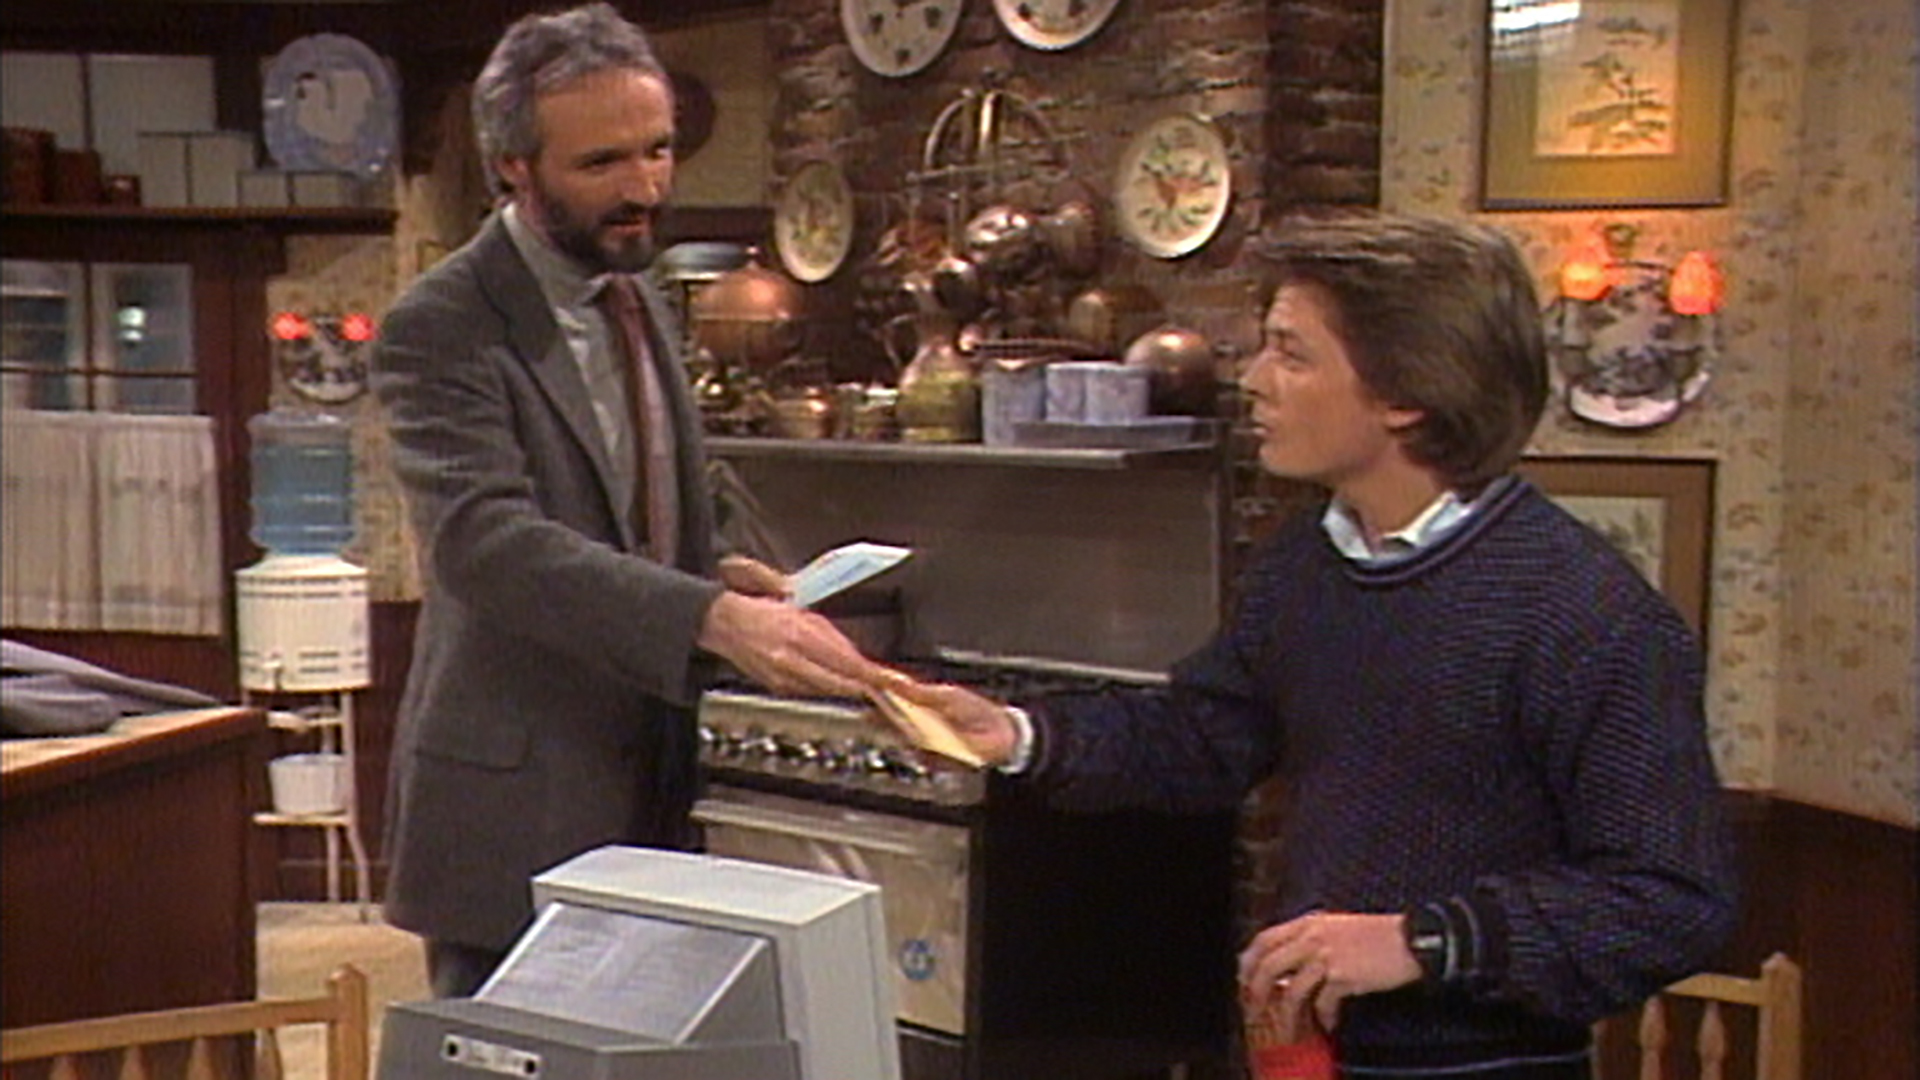 Watch Family Ties Season 4 Episode 16: Checkmate - Full show on CBS All  Access